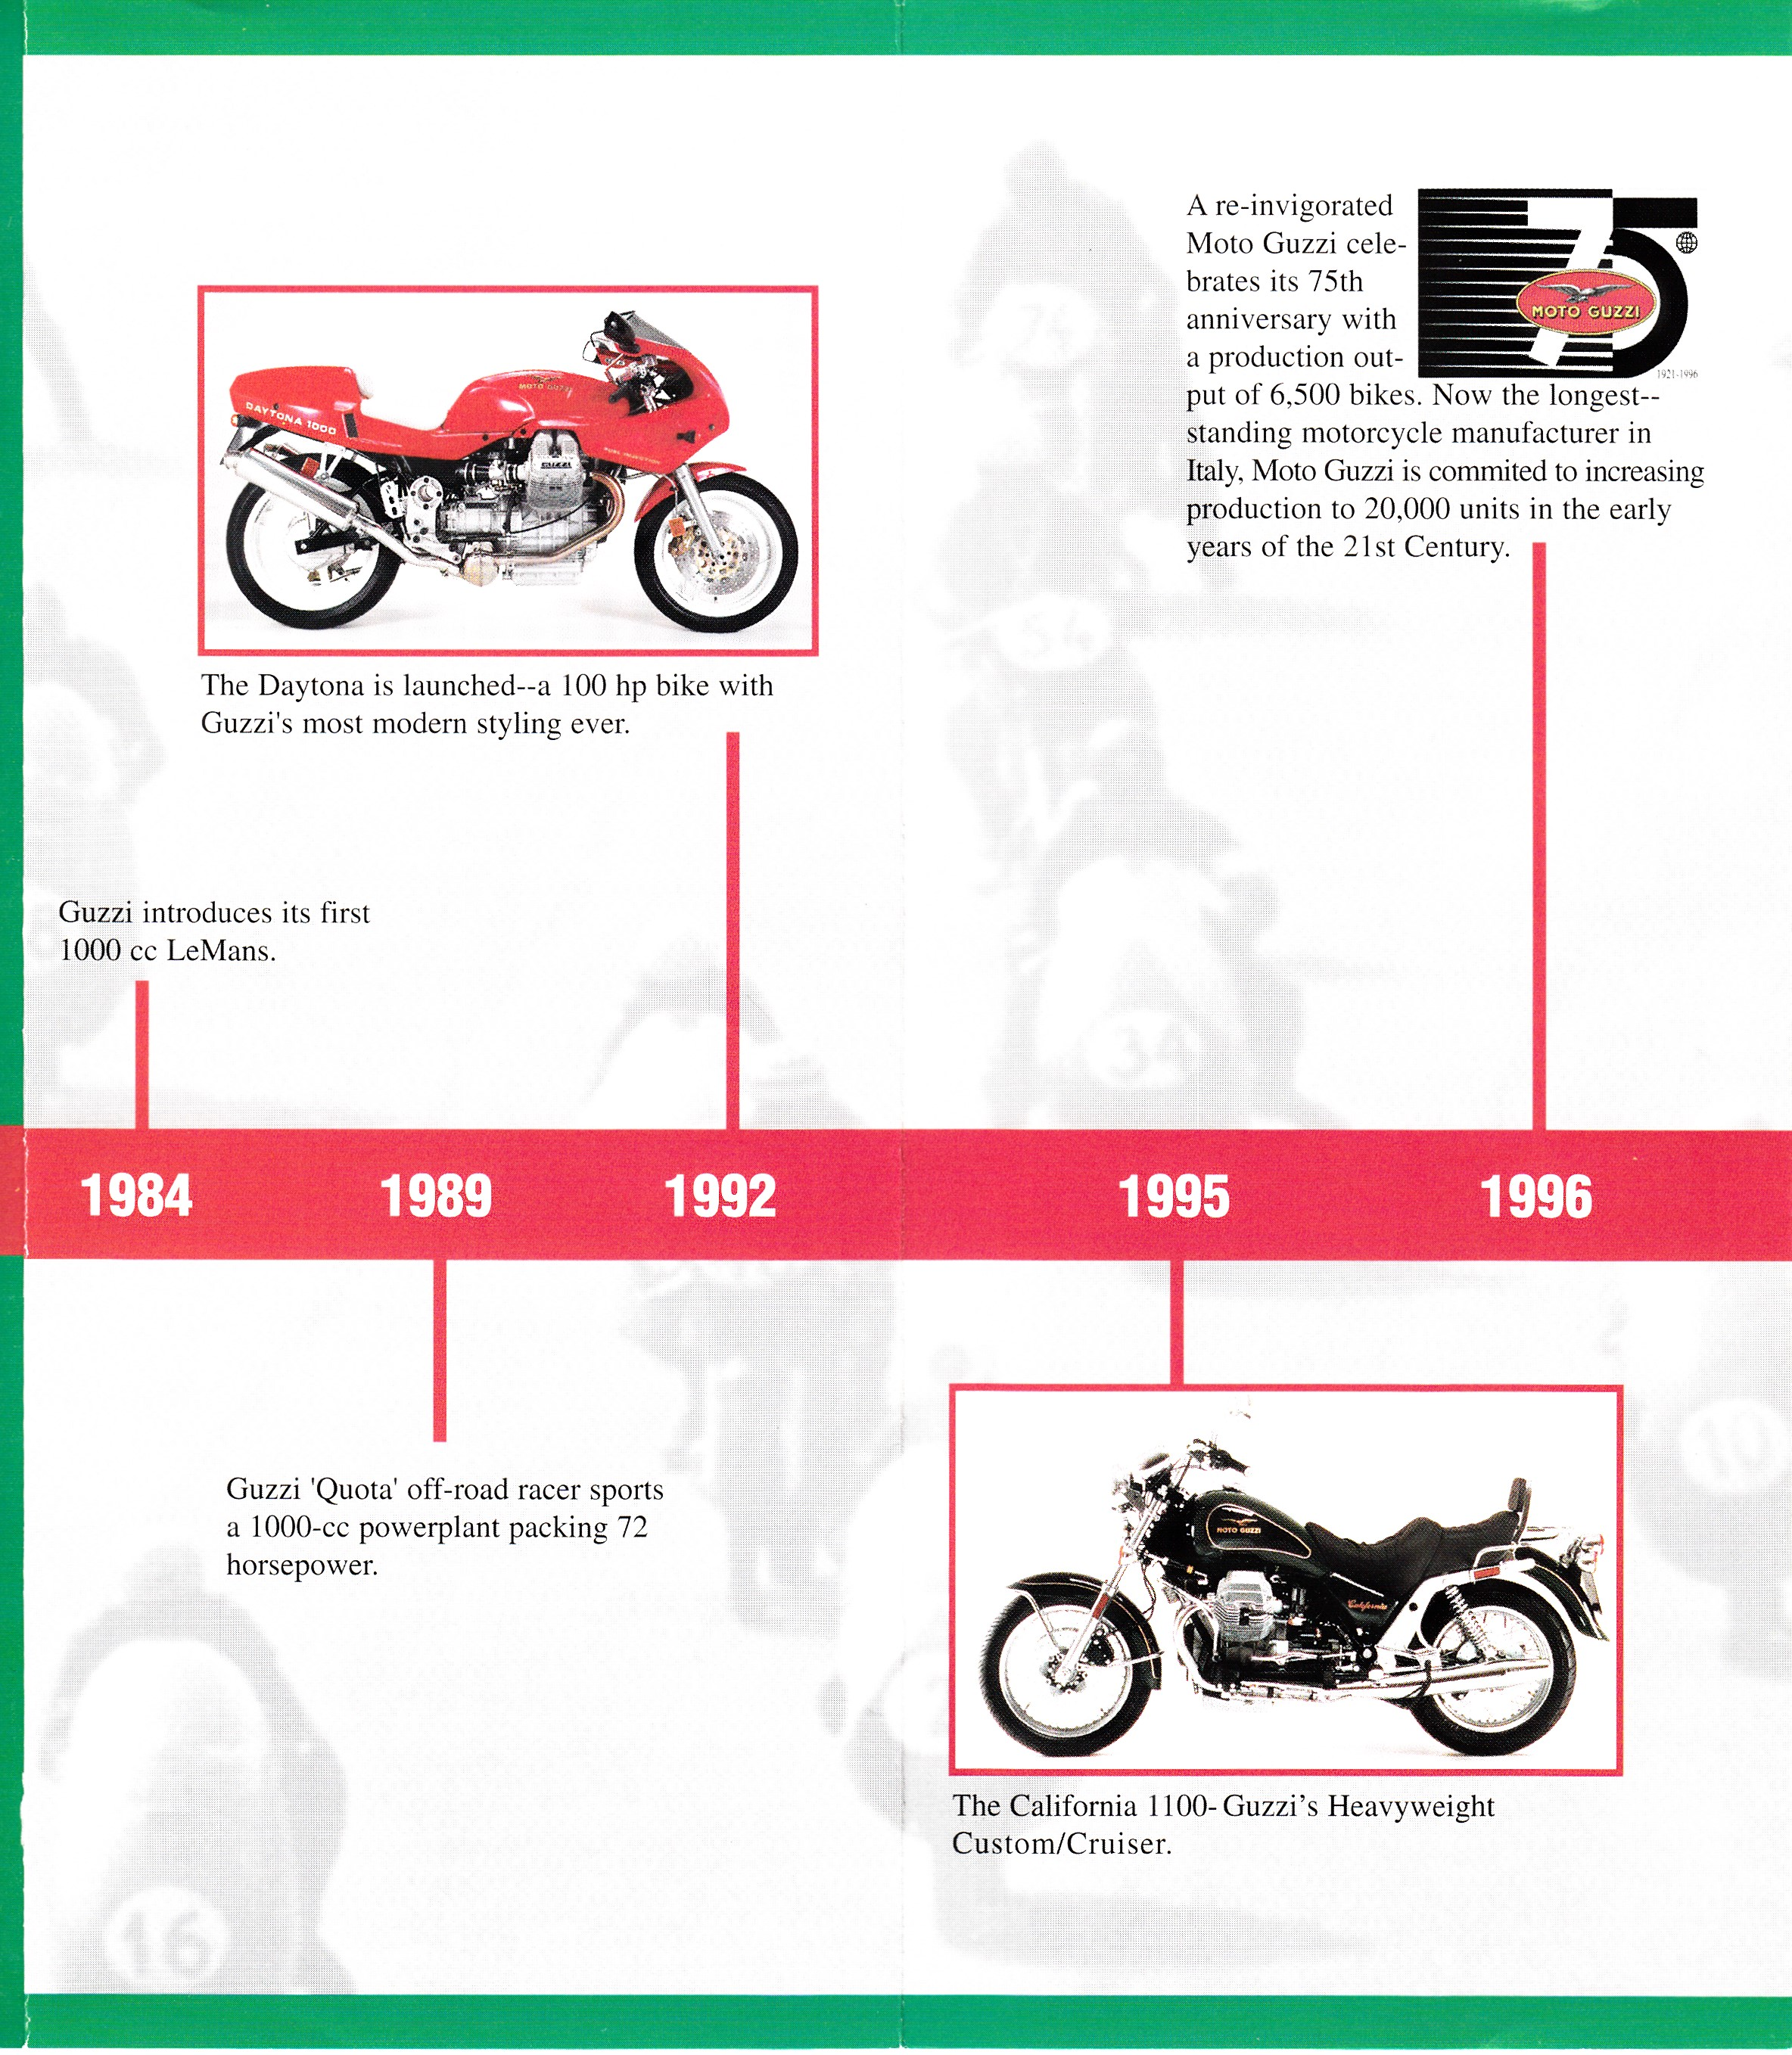 Brochure - Moto Guzzi The history of Moto Guzzi: Seven decades of Moto Guzzi excellence